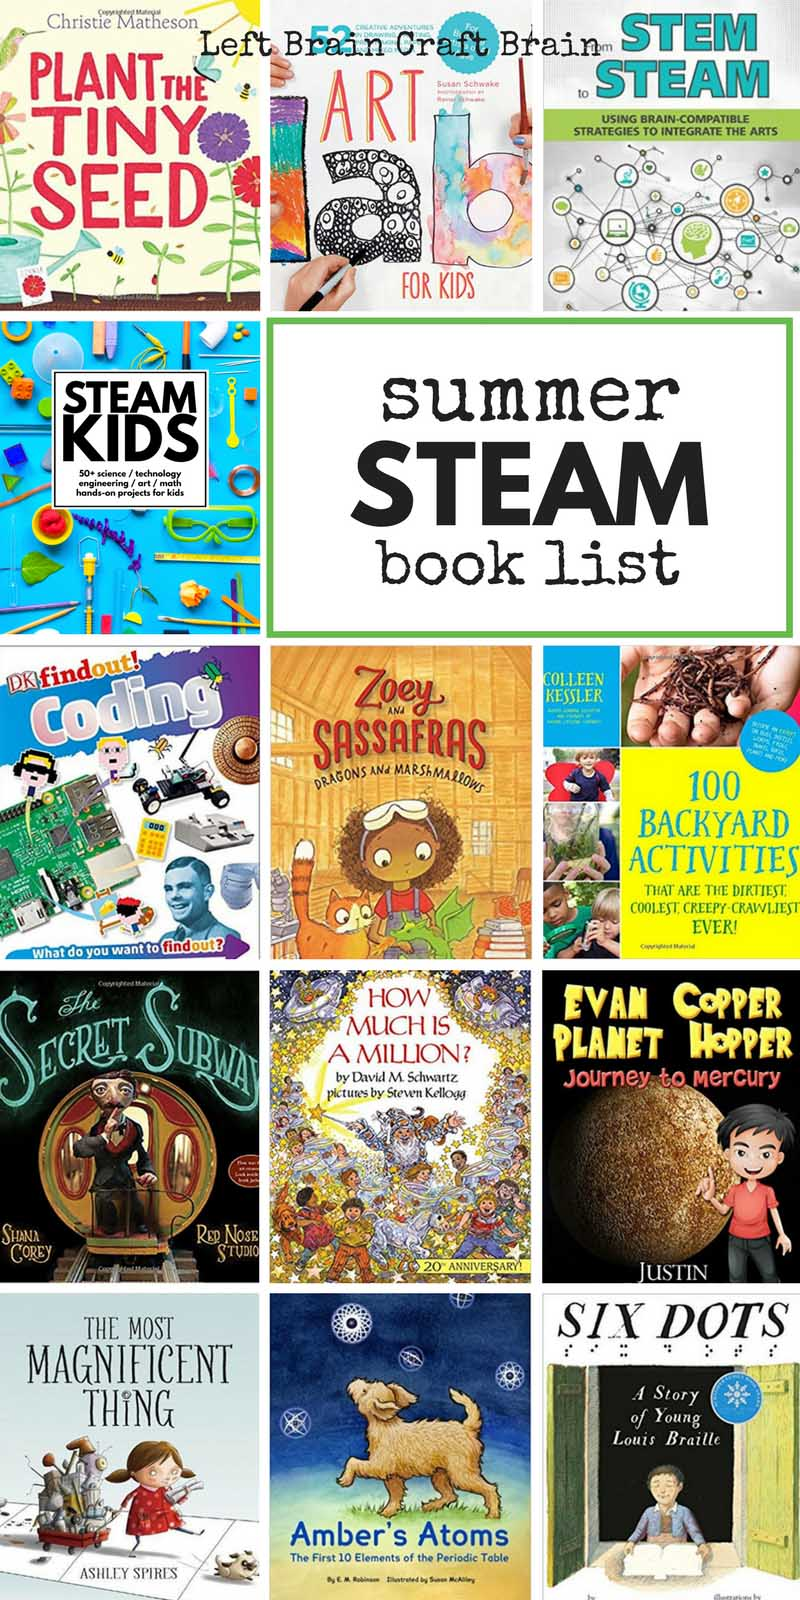 Check out this summer STEAM book list for cool activity, fiction and non-fiction books packed with science, tech, engineering, art, & math fun for kids.